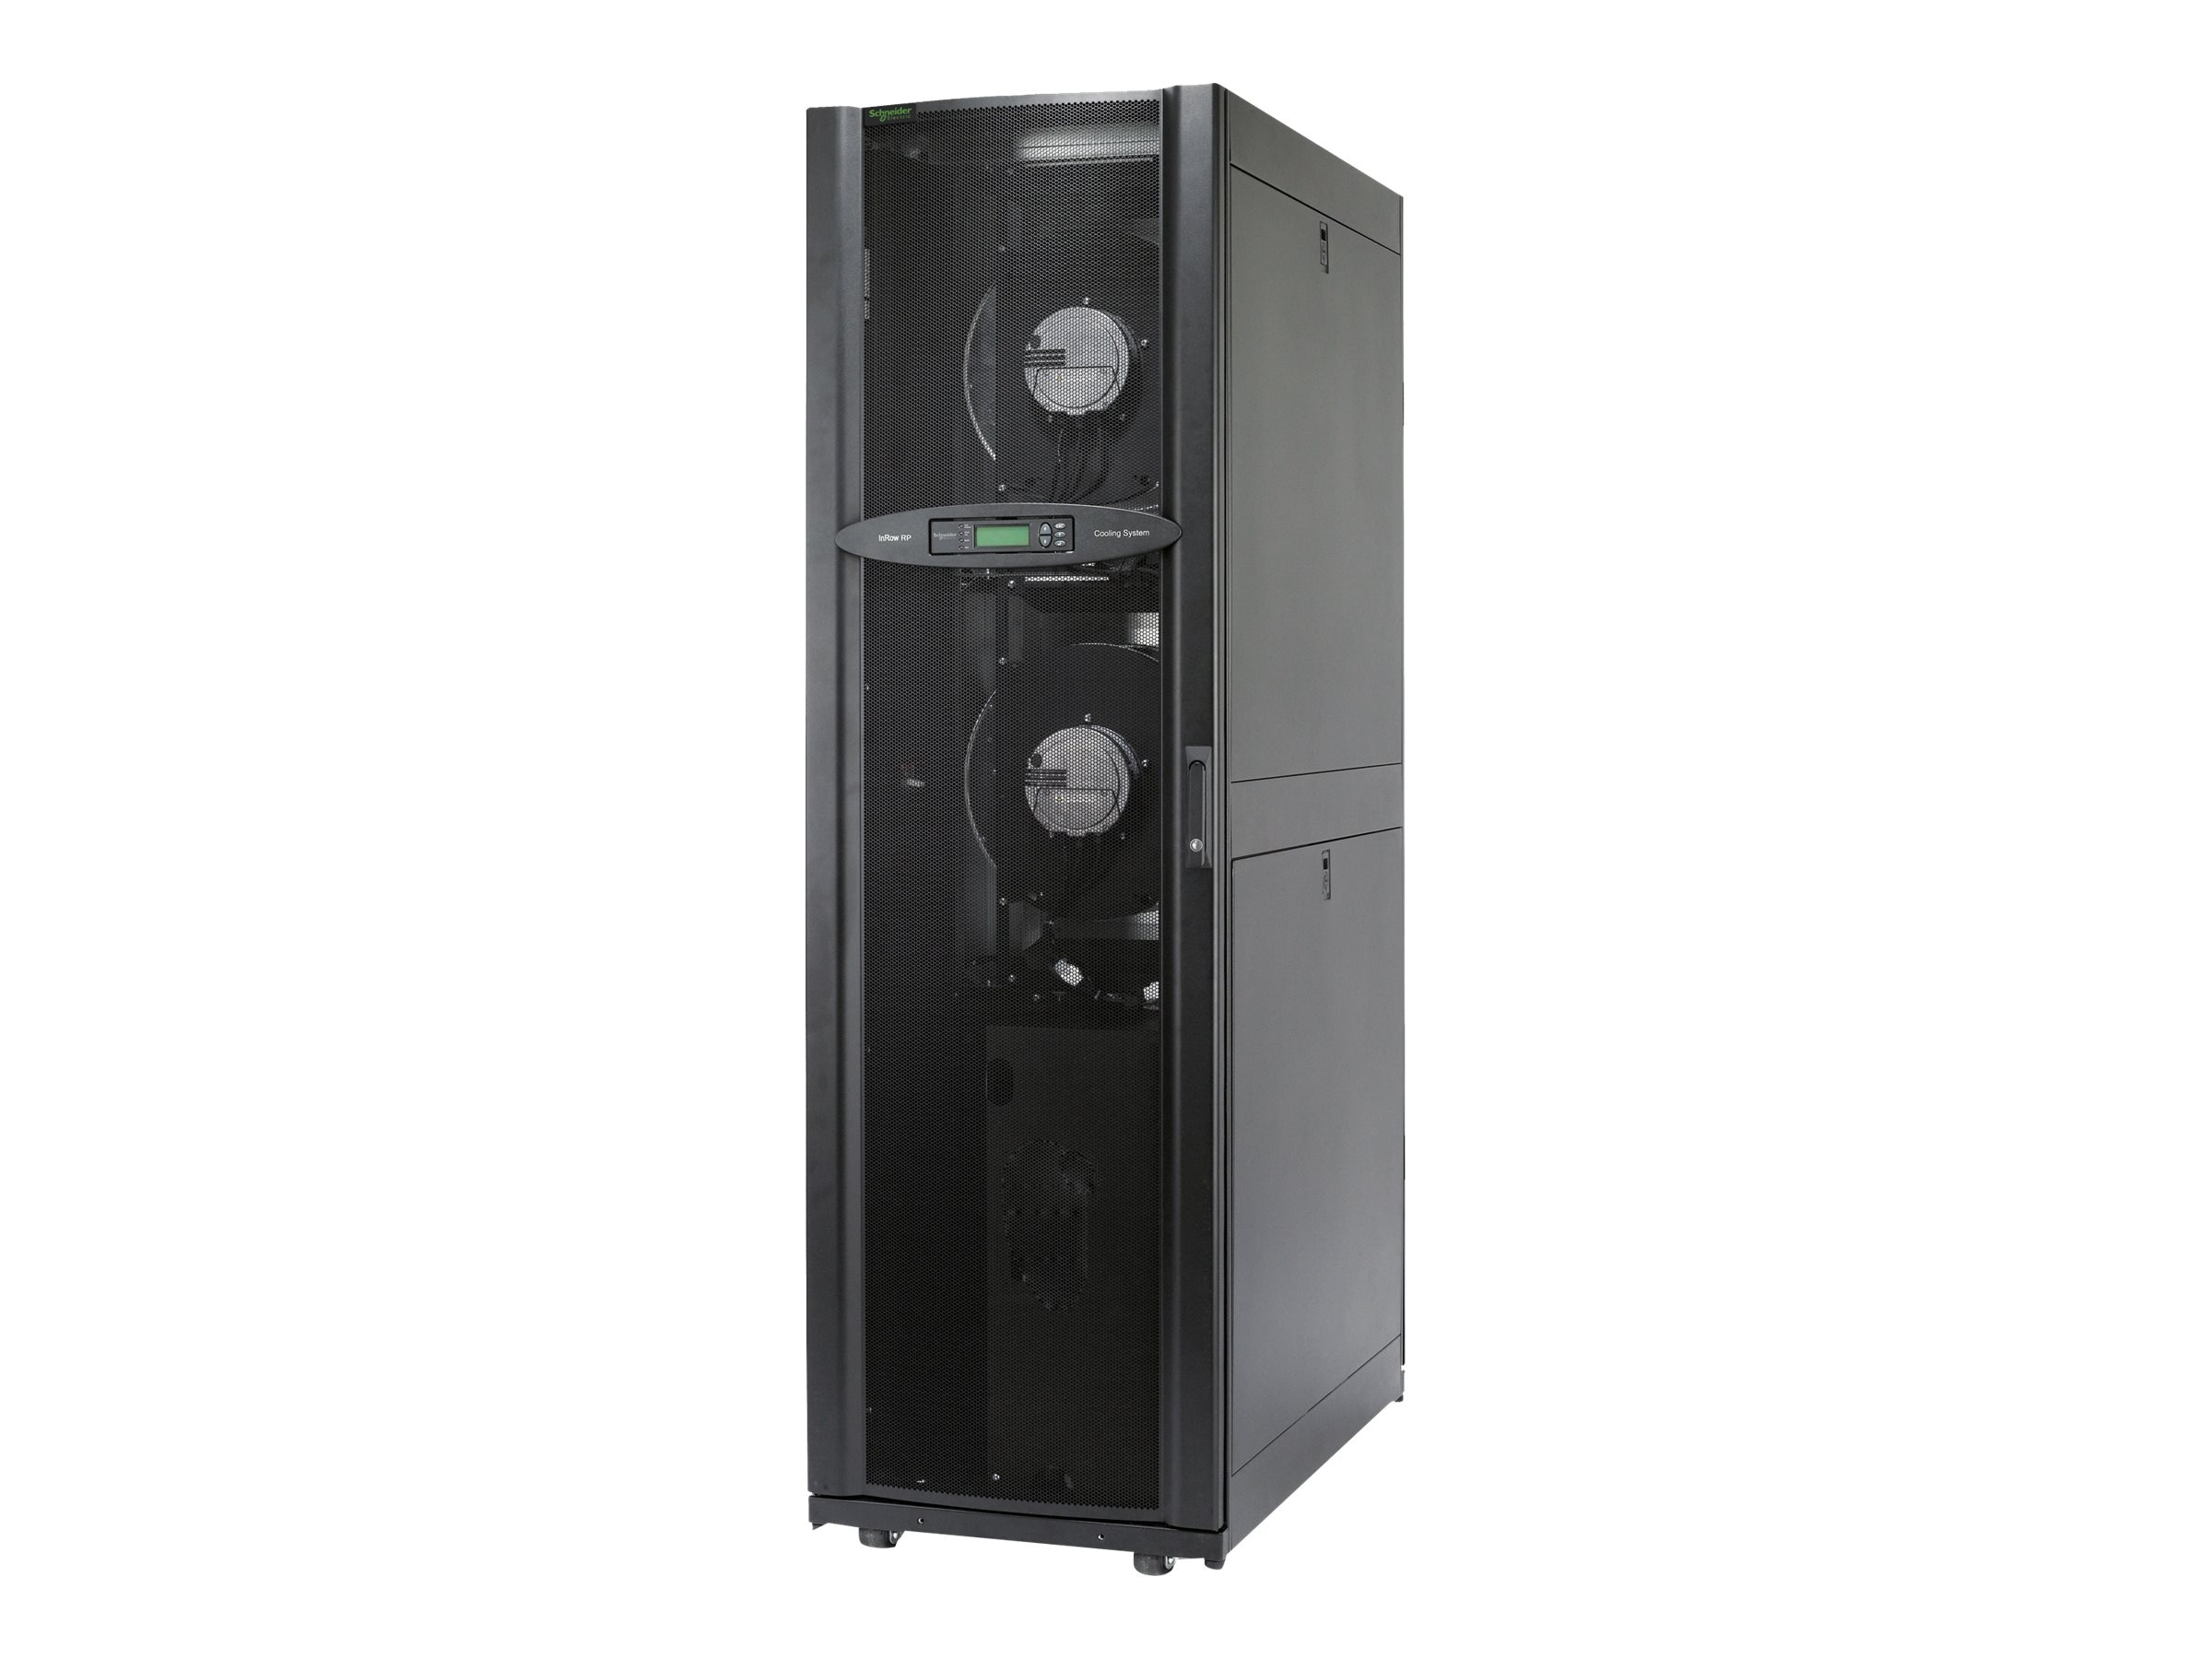 APC InRow RP DX Air-Cooled, 200-240V, ACRP100, 7391075, Cooling Systems/Fans